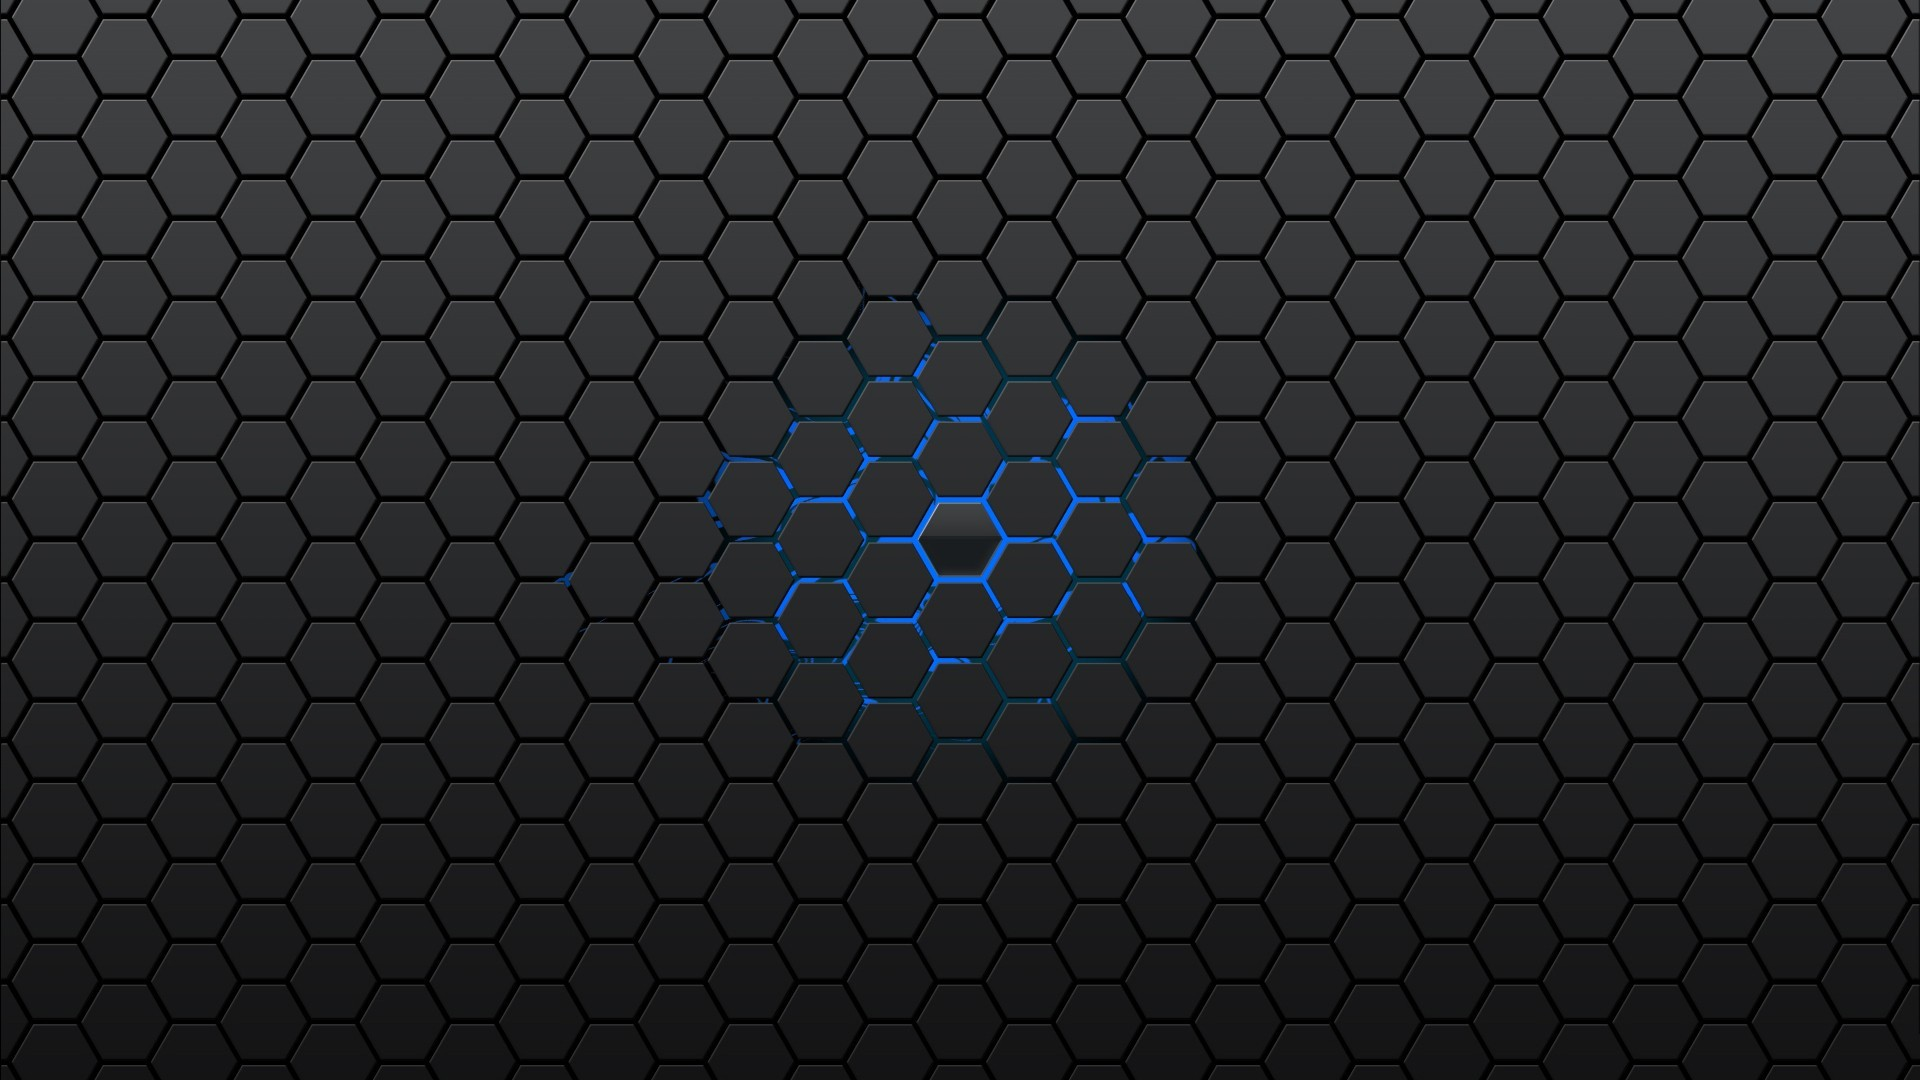 Res: 1920x1080, Black Honeycomb Pattern Wallpaper